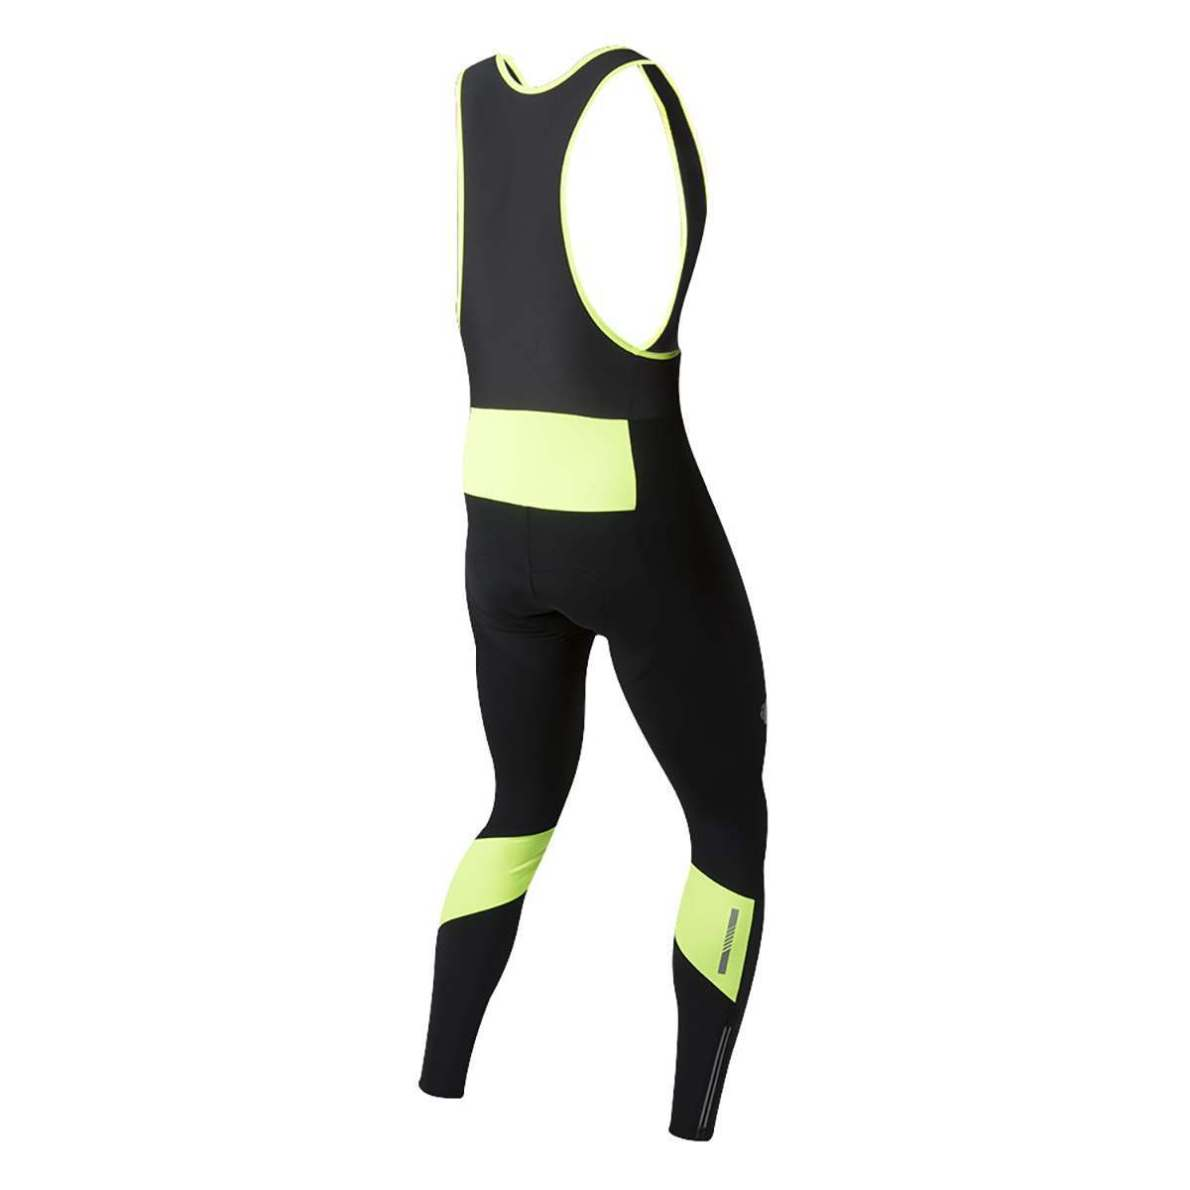 Pursuit Thermal Cyc Bib Tight